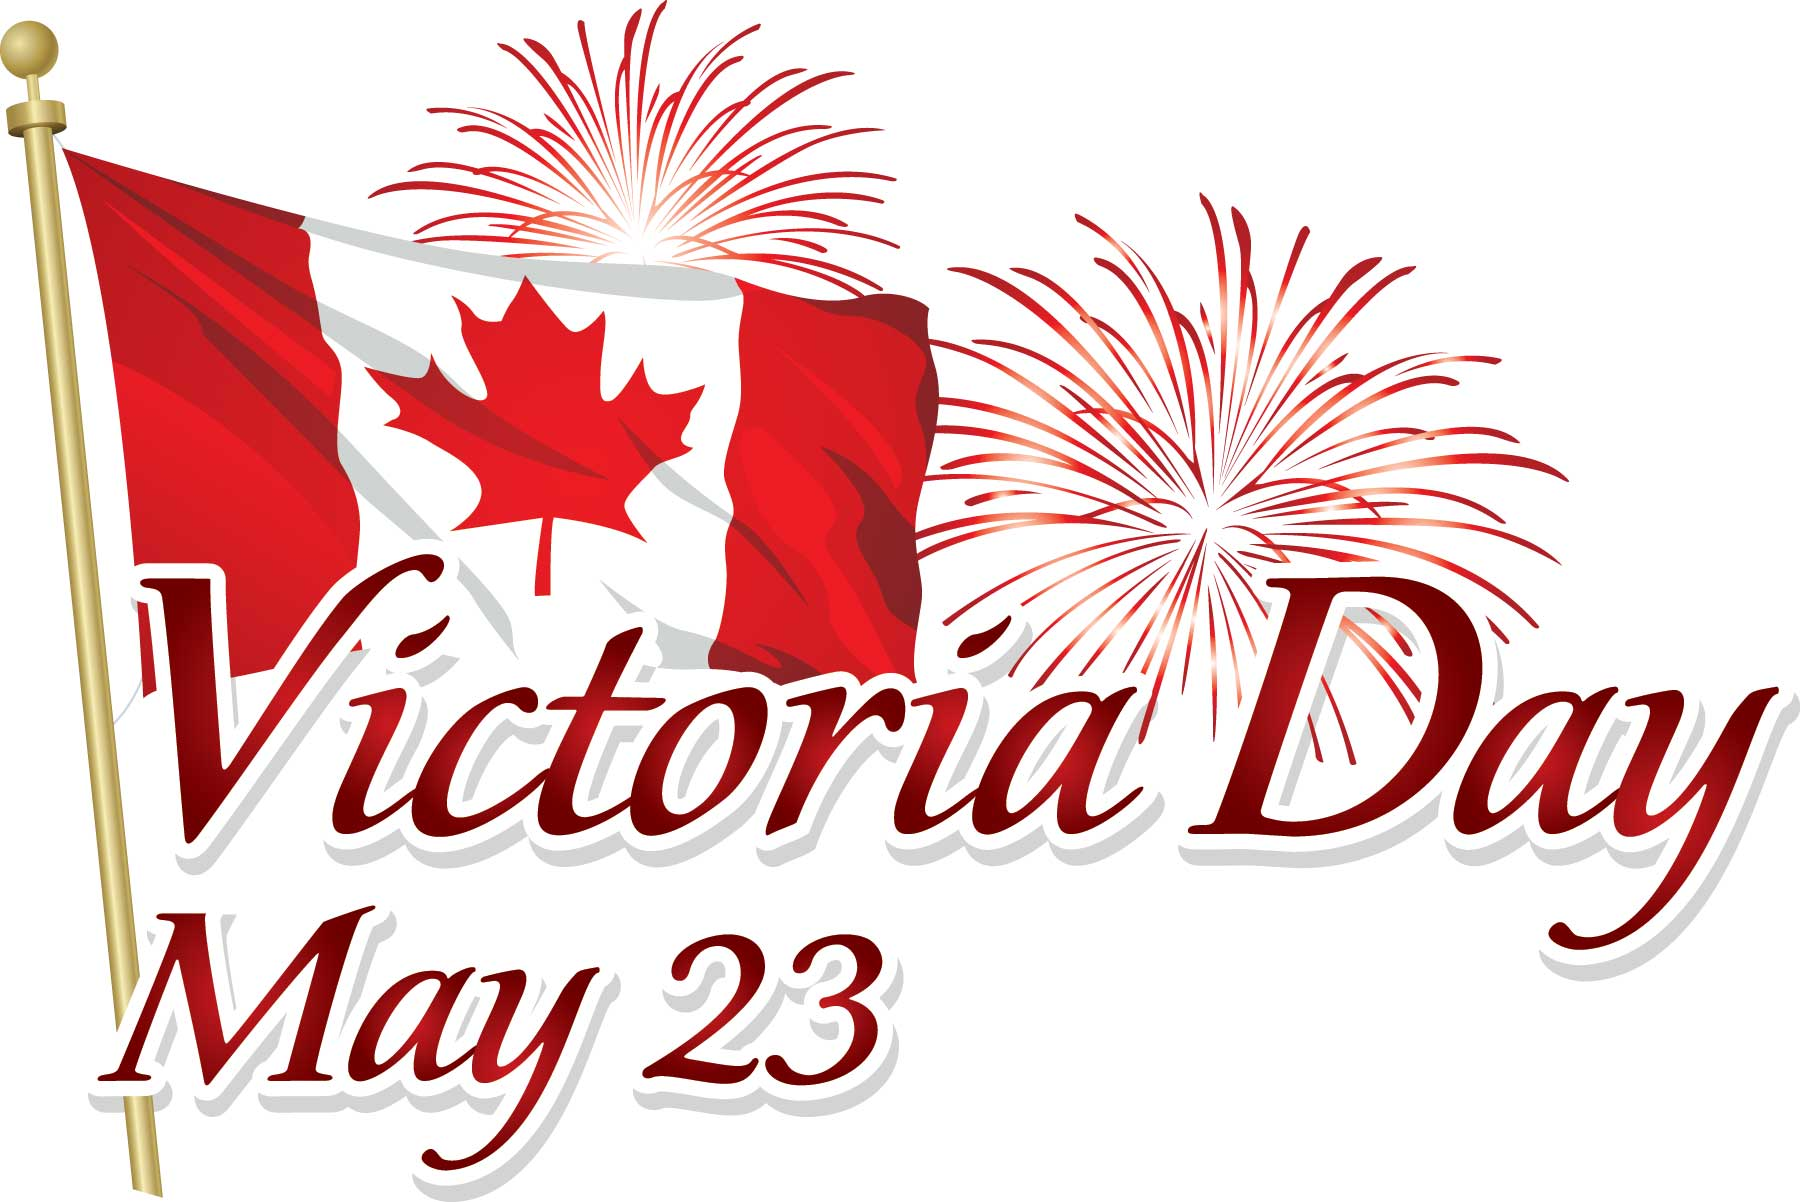 Victoria Day Is A Public Holiday Observed Across Canada On The.